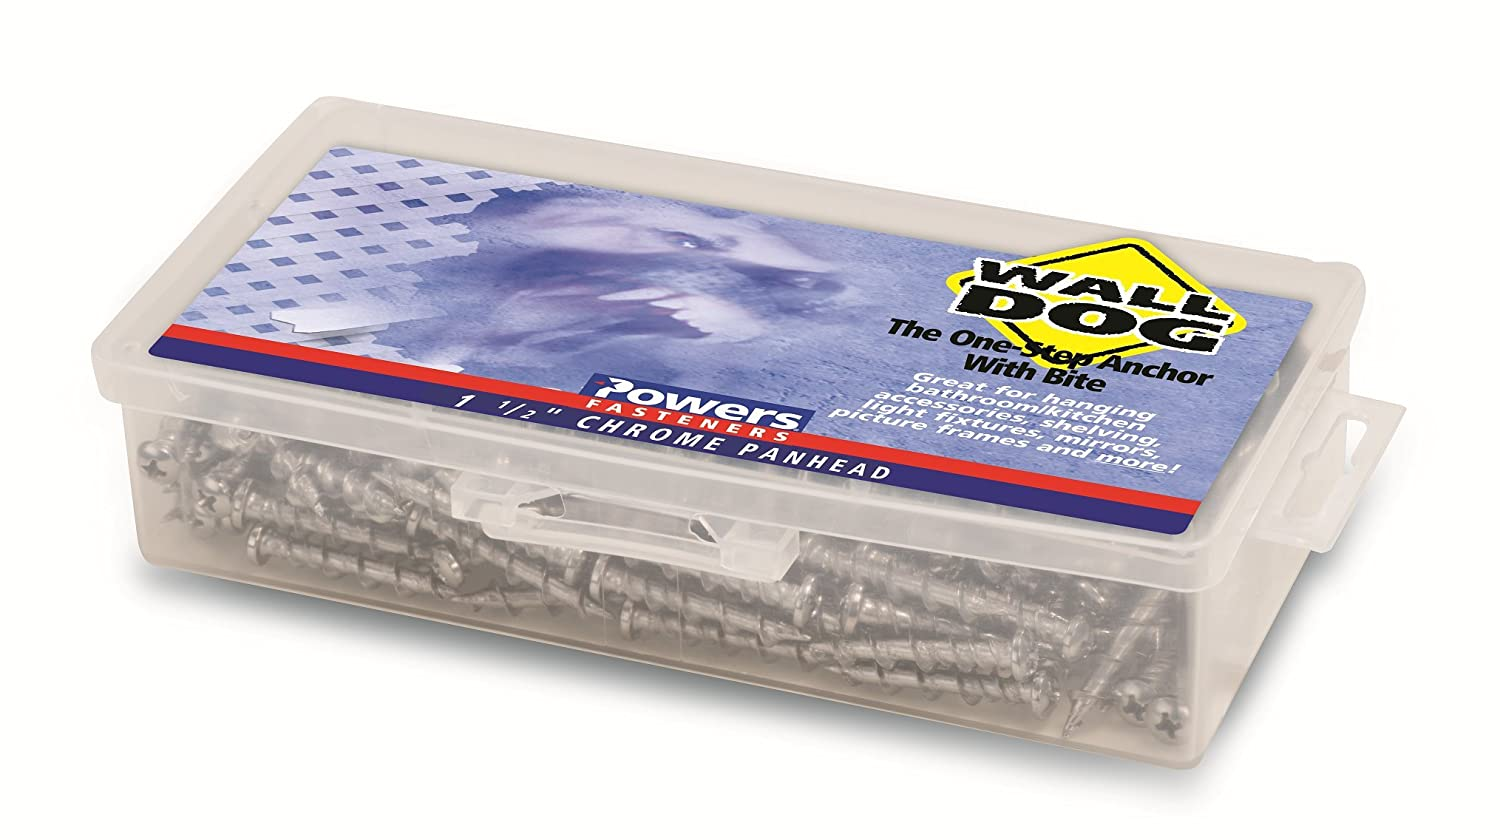 Powers Fastening Innovations 2314 Wall-Dog Kit-Includes Box, Phillips Screwdriver, 50 Zinc Oval Head Anchors, 100 Per Box Powers Fastening Innovations 02314 Wall-Dog Kit - Includes Kit Box